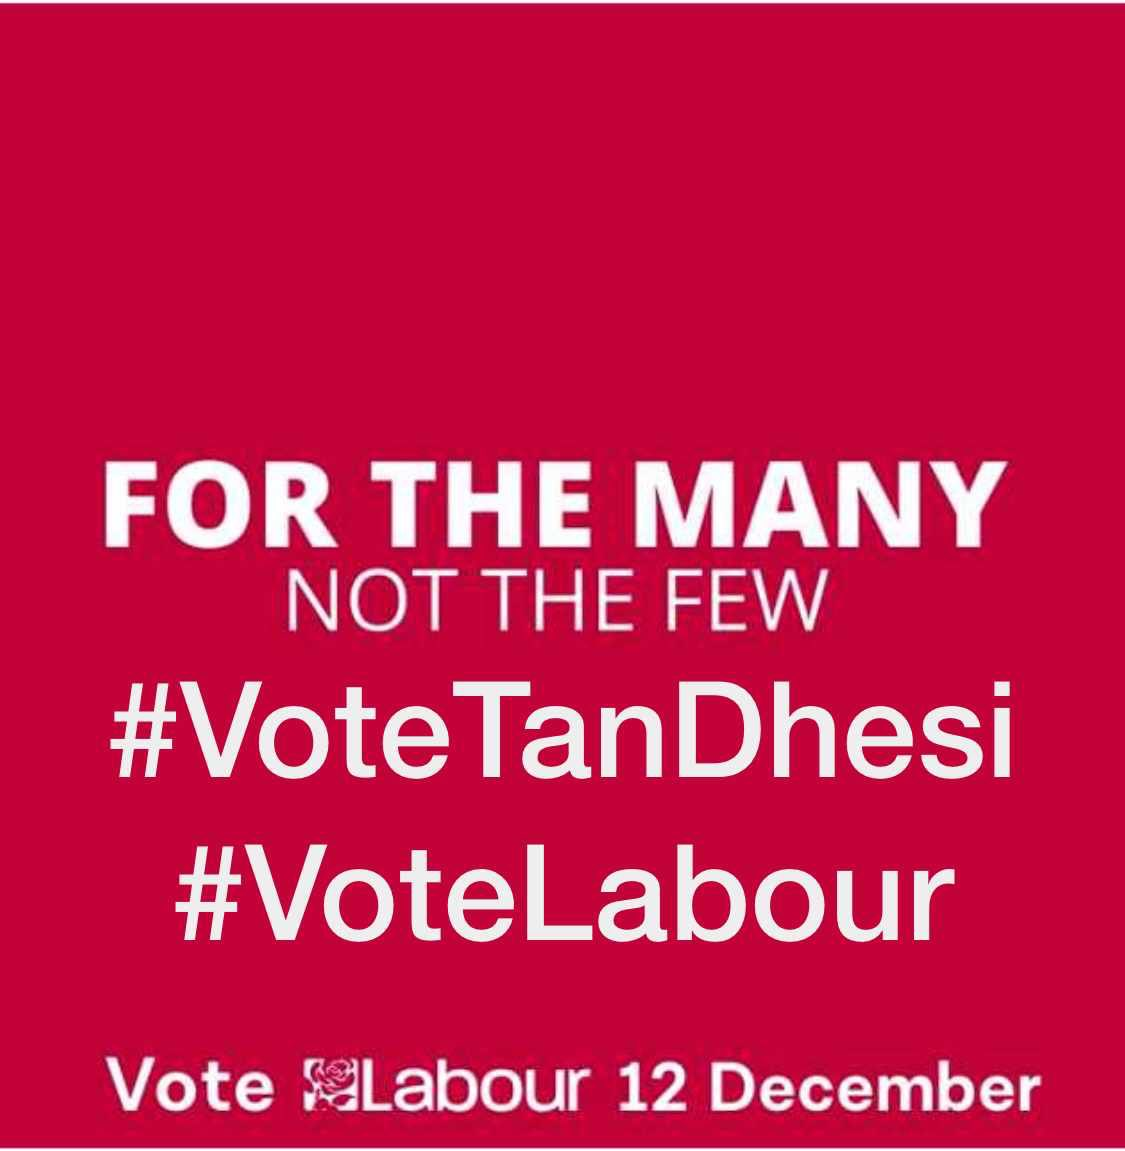 test Twitter Media - The Sikh Network fully support are campaigning to re-elect our own @TanDhesi. A humble request to all Sikhs in Slough area to vote to retain Our 1st Turban wearing Sikh MP in #GE19, which ever political party you affiliate with. Pls vote with your Sikh conscience 🙏🏽 #VoteTanDhesi https://t.co/9YeCW2NQIw